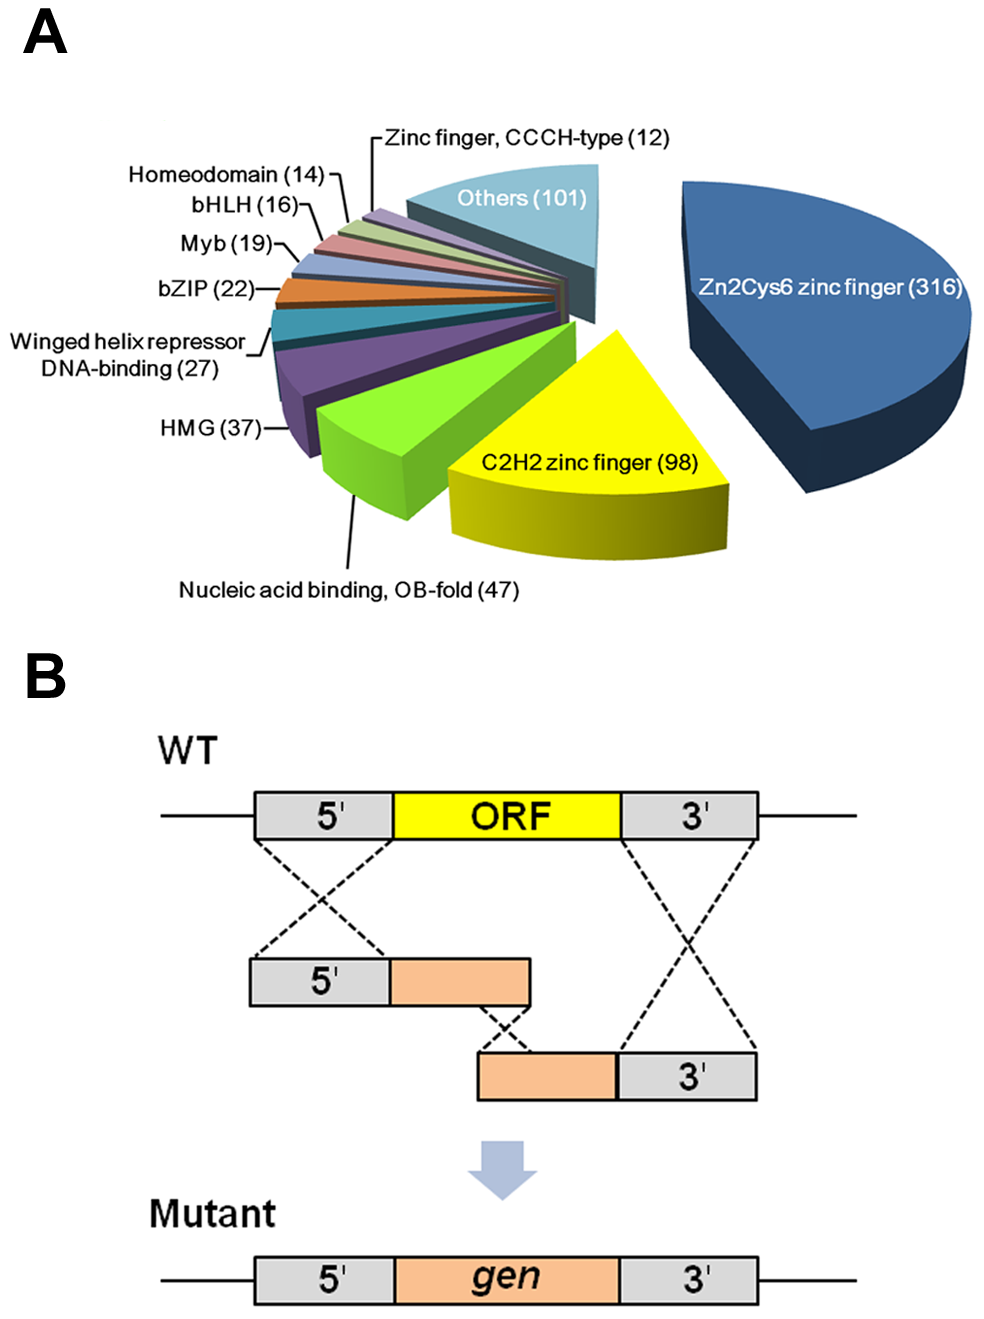 Classification and deletion strategy of putative transcription factors (TFs) in <i>Fusarium graminearum</i>.